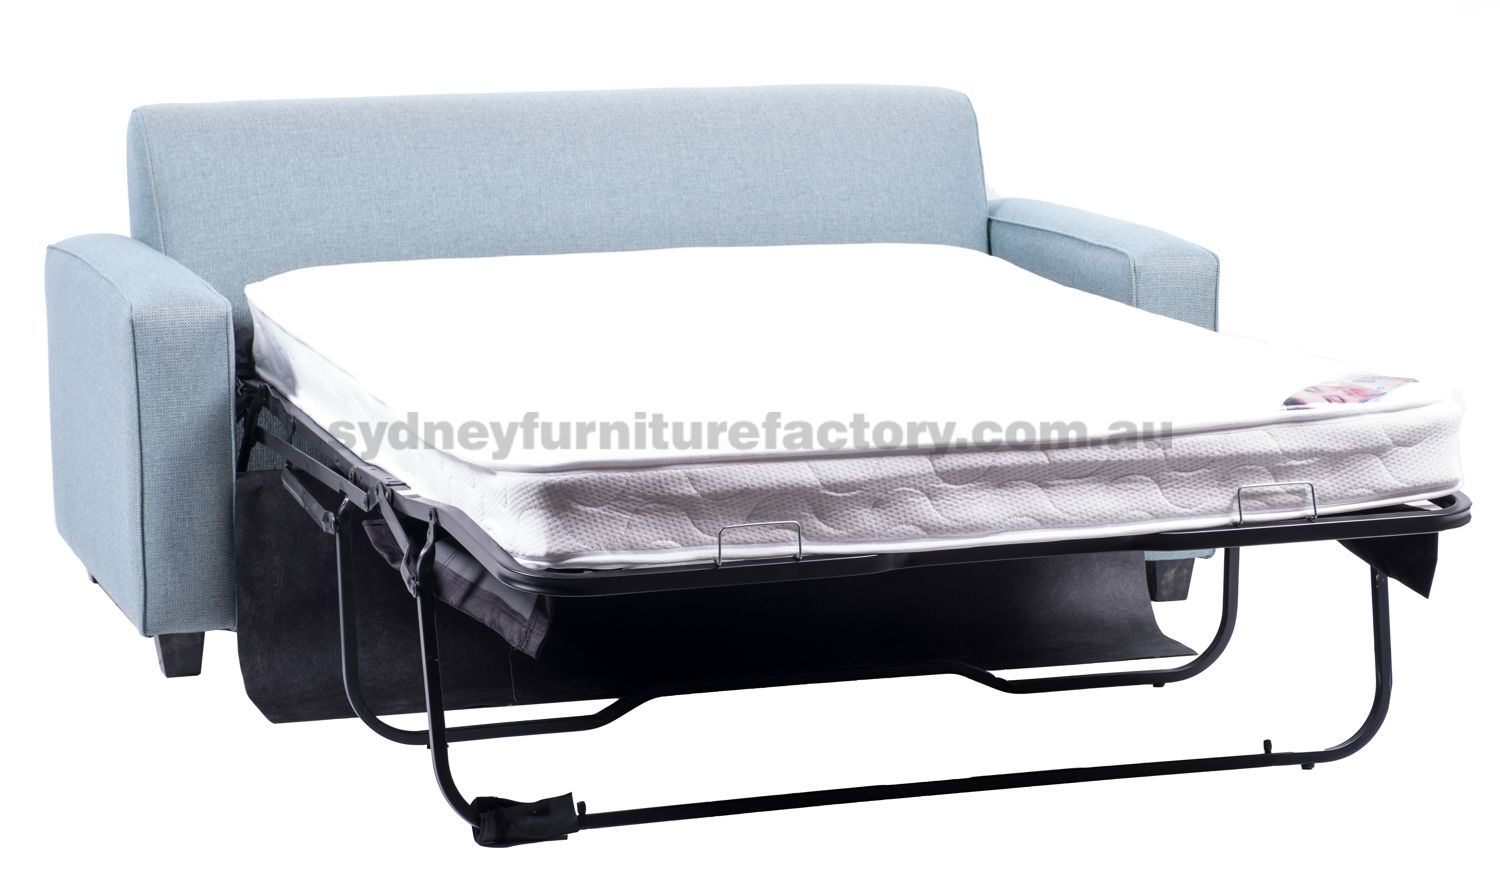 Oatley Sofa Bed with Latex Inner Spring Mattress, Sydney ...